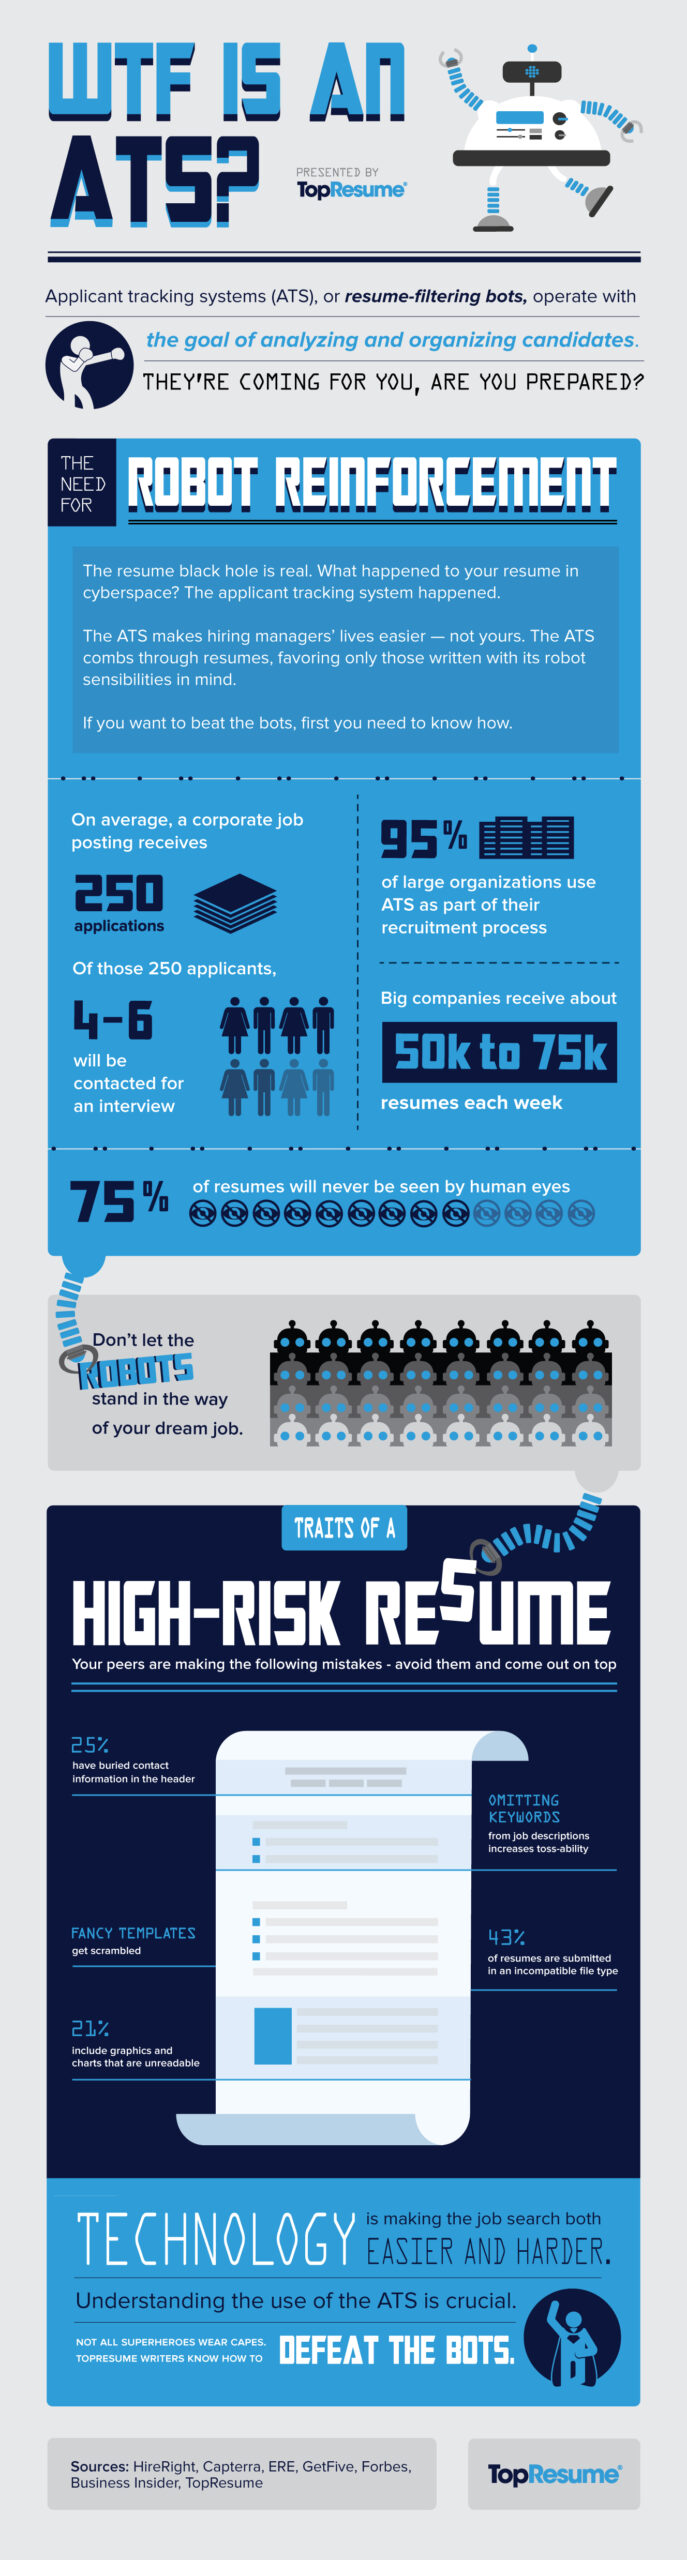 an ats to write resume beat the applicant tracking system topresume test your infographic Resume Applicant Tracking System Test Your Resume